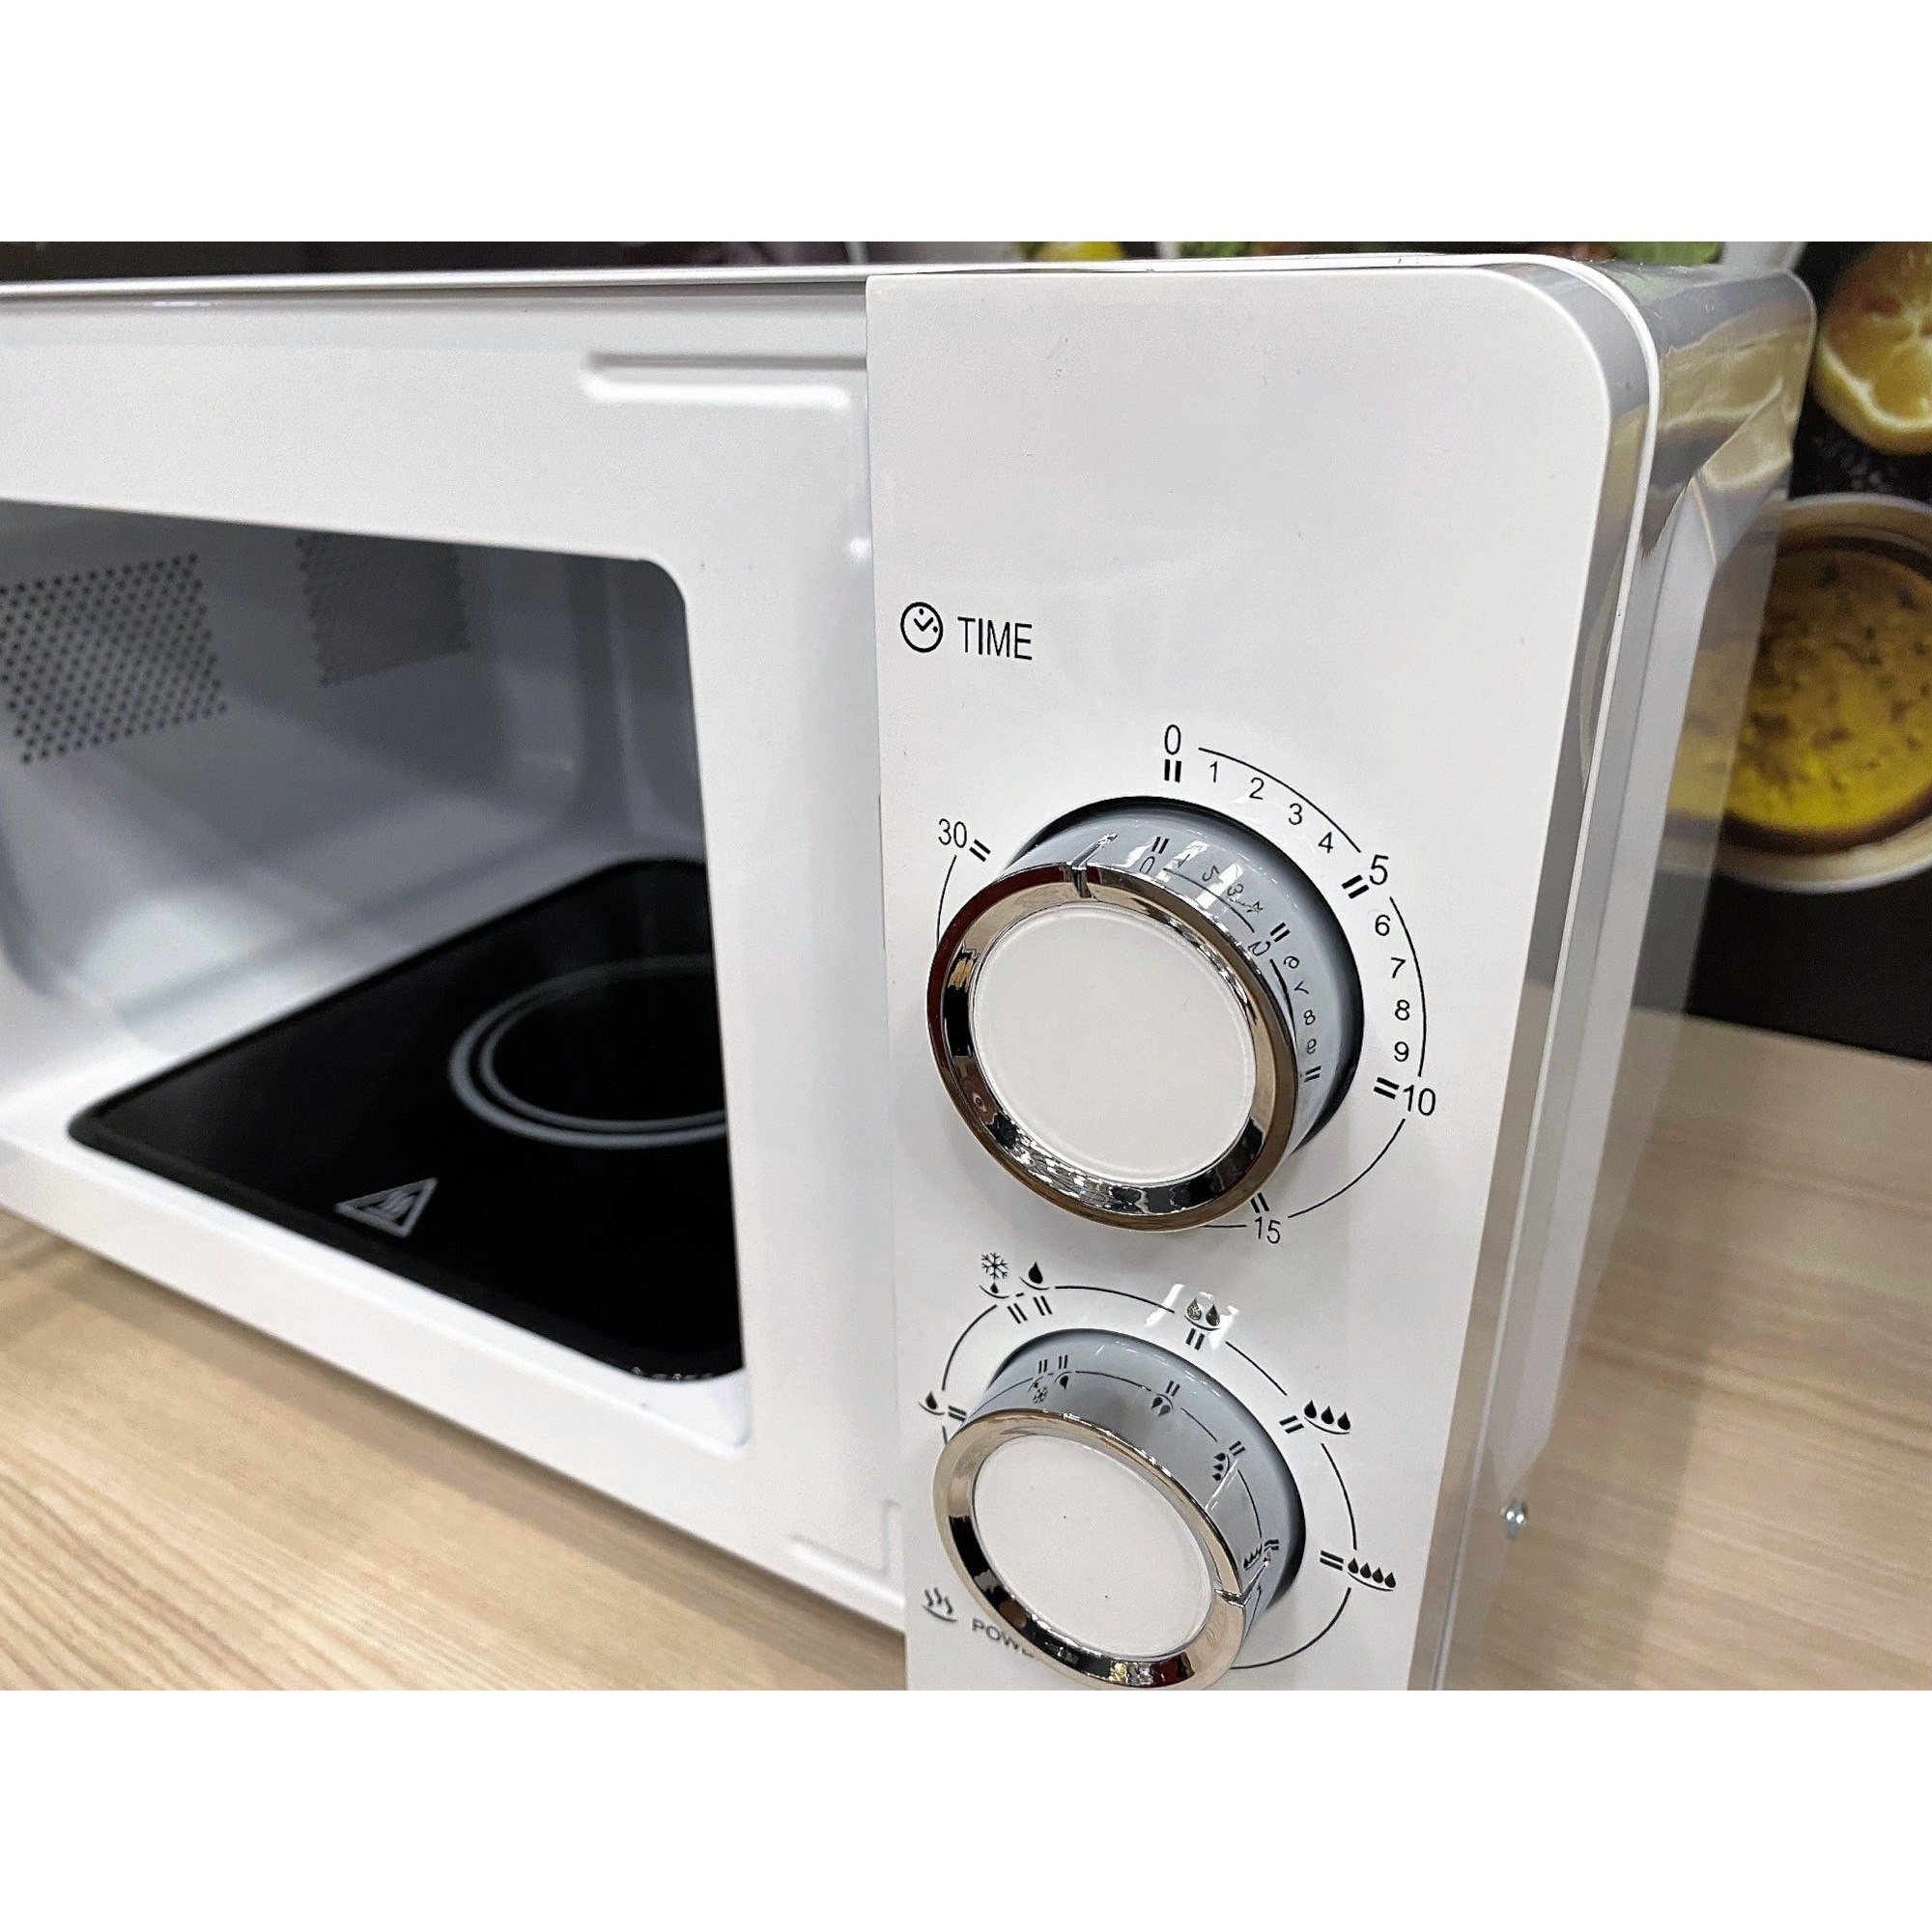 Altimo MMW702W 700w Microwave 20L Capacity in White